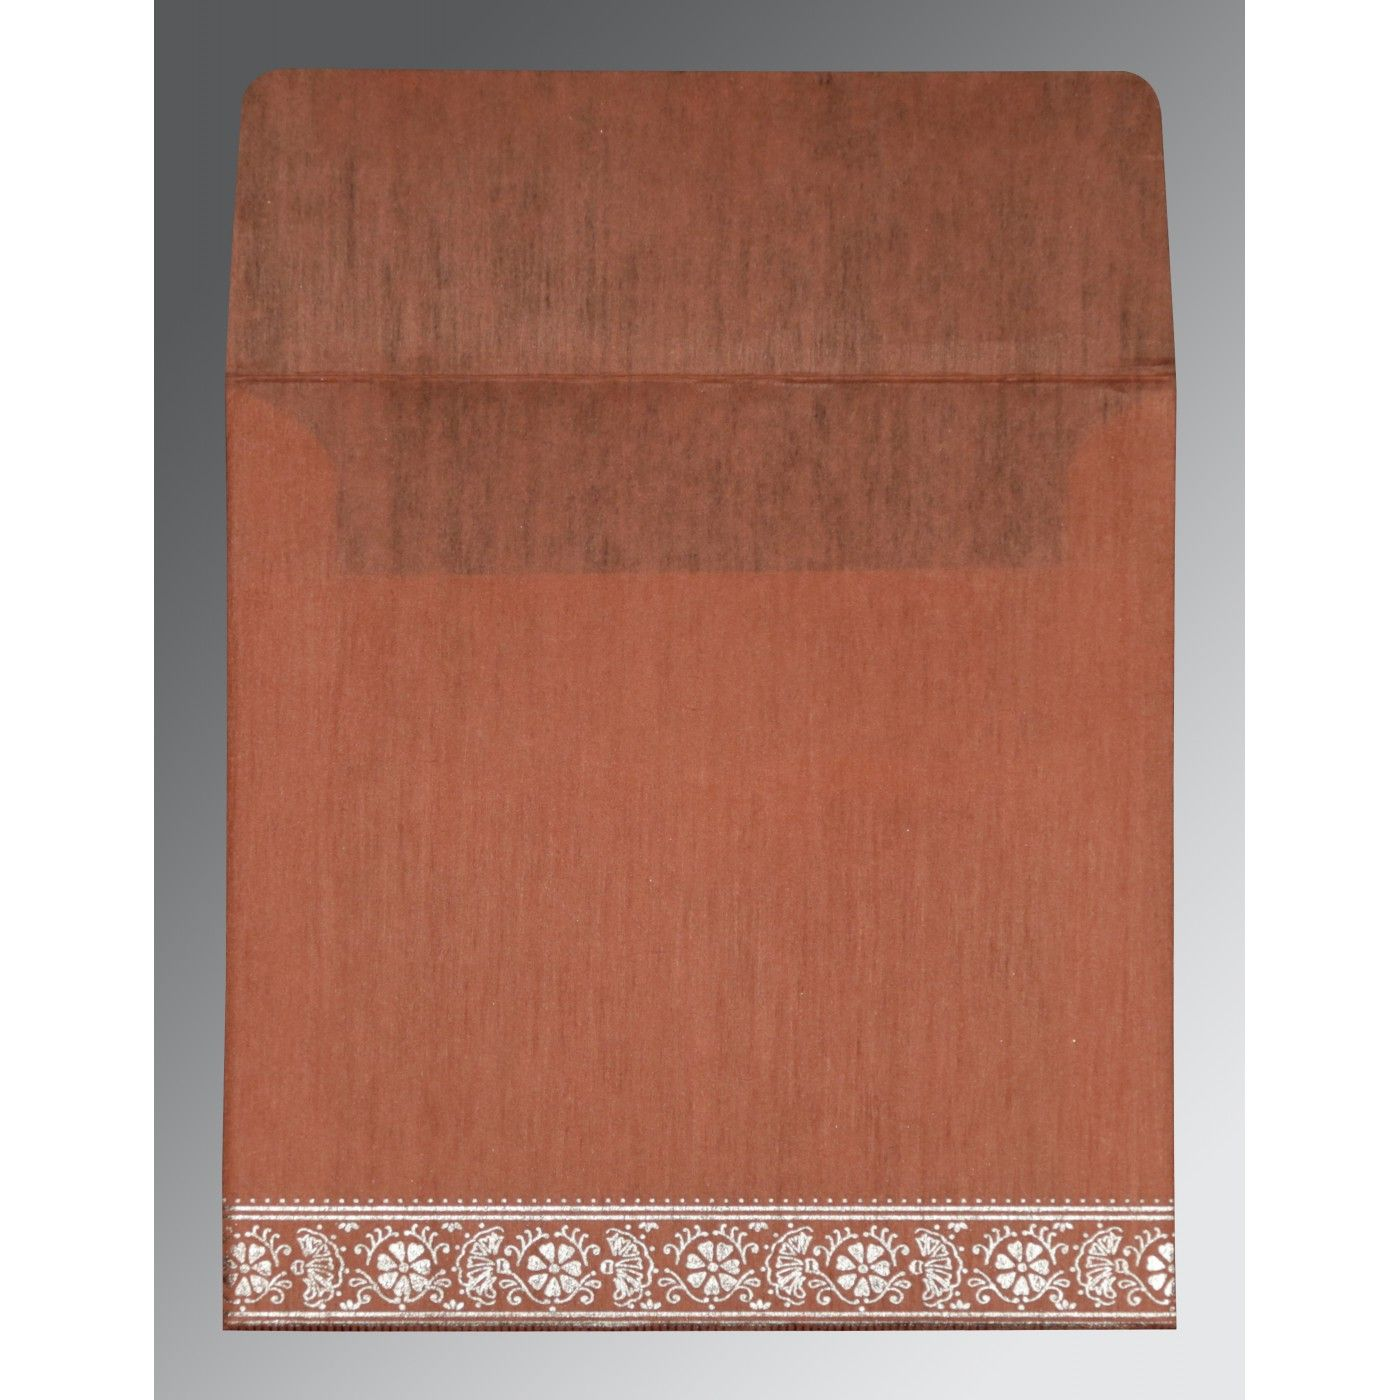 CORAL WOOLY FOIL STAMPED WEDDING CARD : CG-8242L - IndianWeddingCards